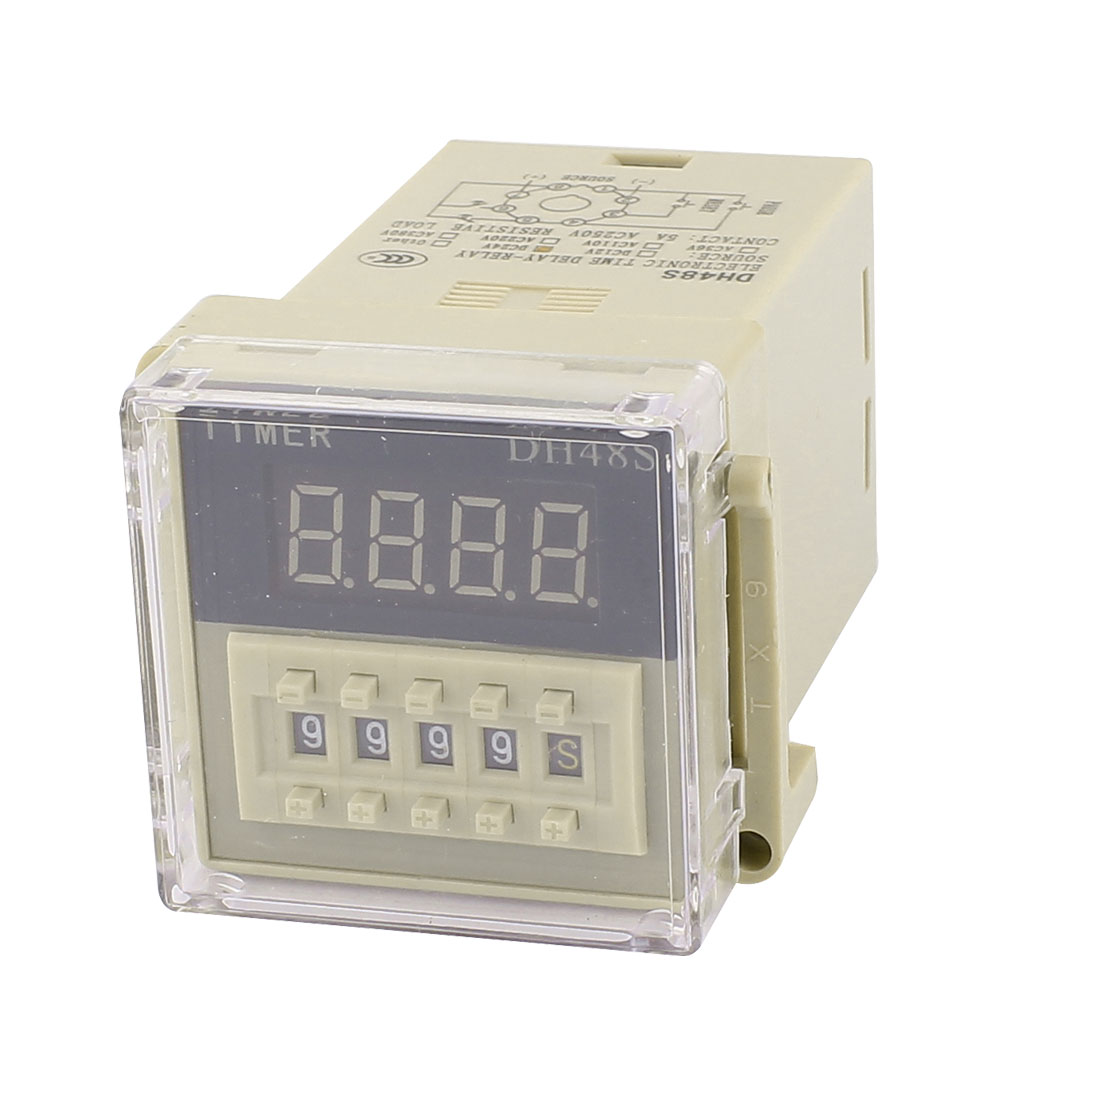 Dh48s Dpdt 2No 2Nc 8 Terminals 0.01S-9999H Electronic Timer Timing Time Delay Relay 24V(China (Mainland))